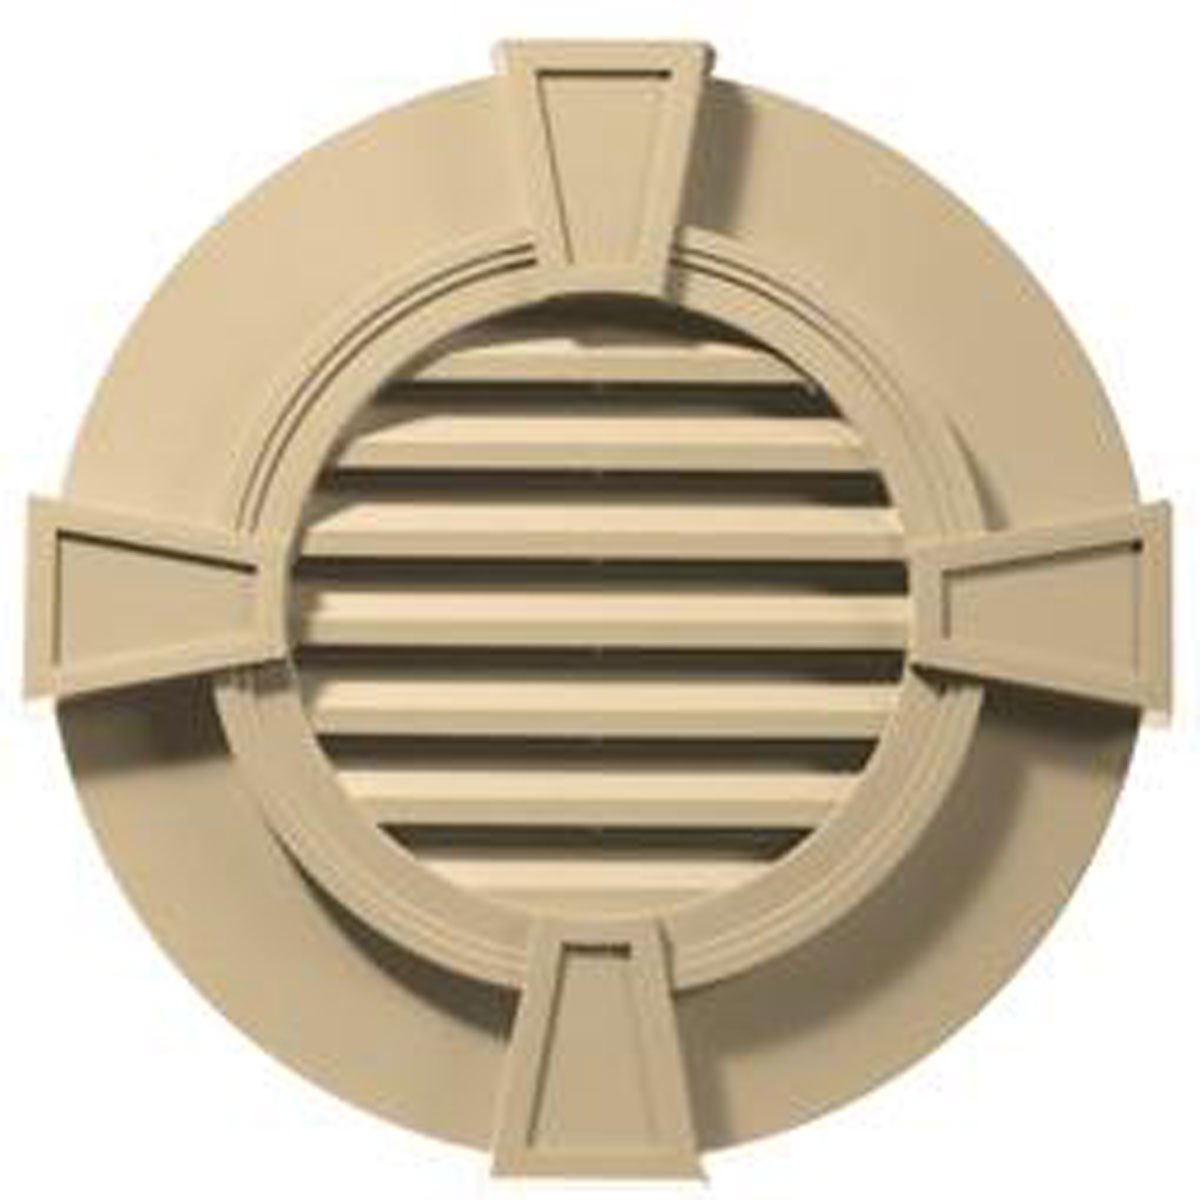 30''W x 30''H Round Gable Vent Louver with Keystones, 50 Sq. Inch Vent Area, 012 - Dark Almond